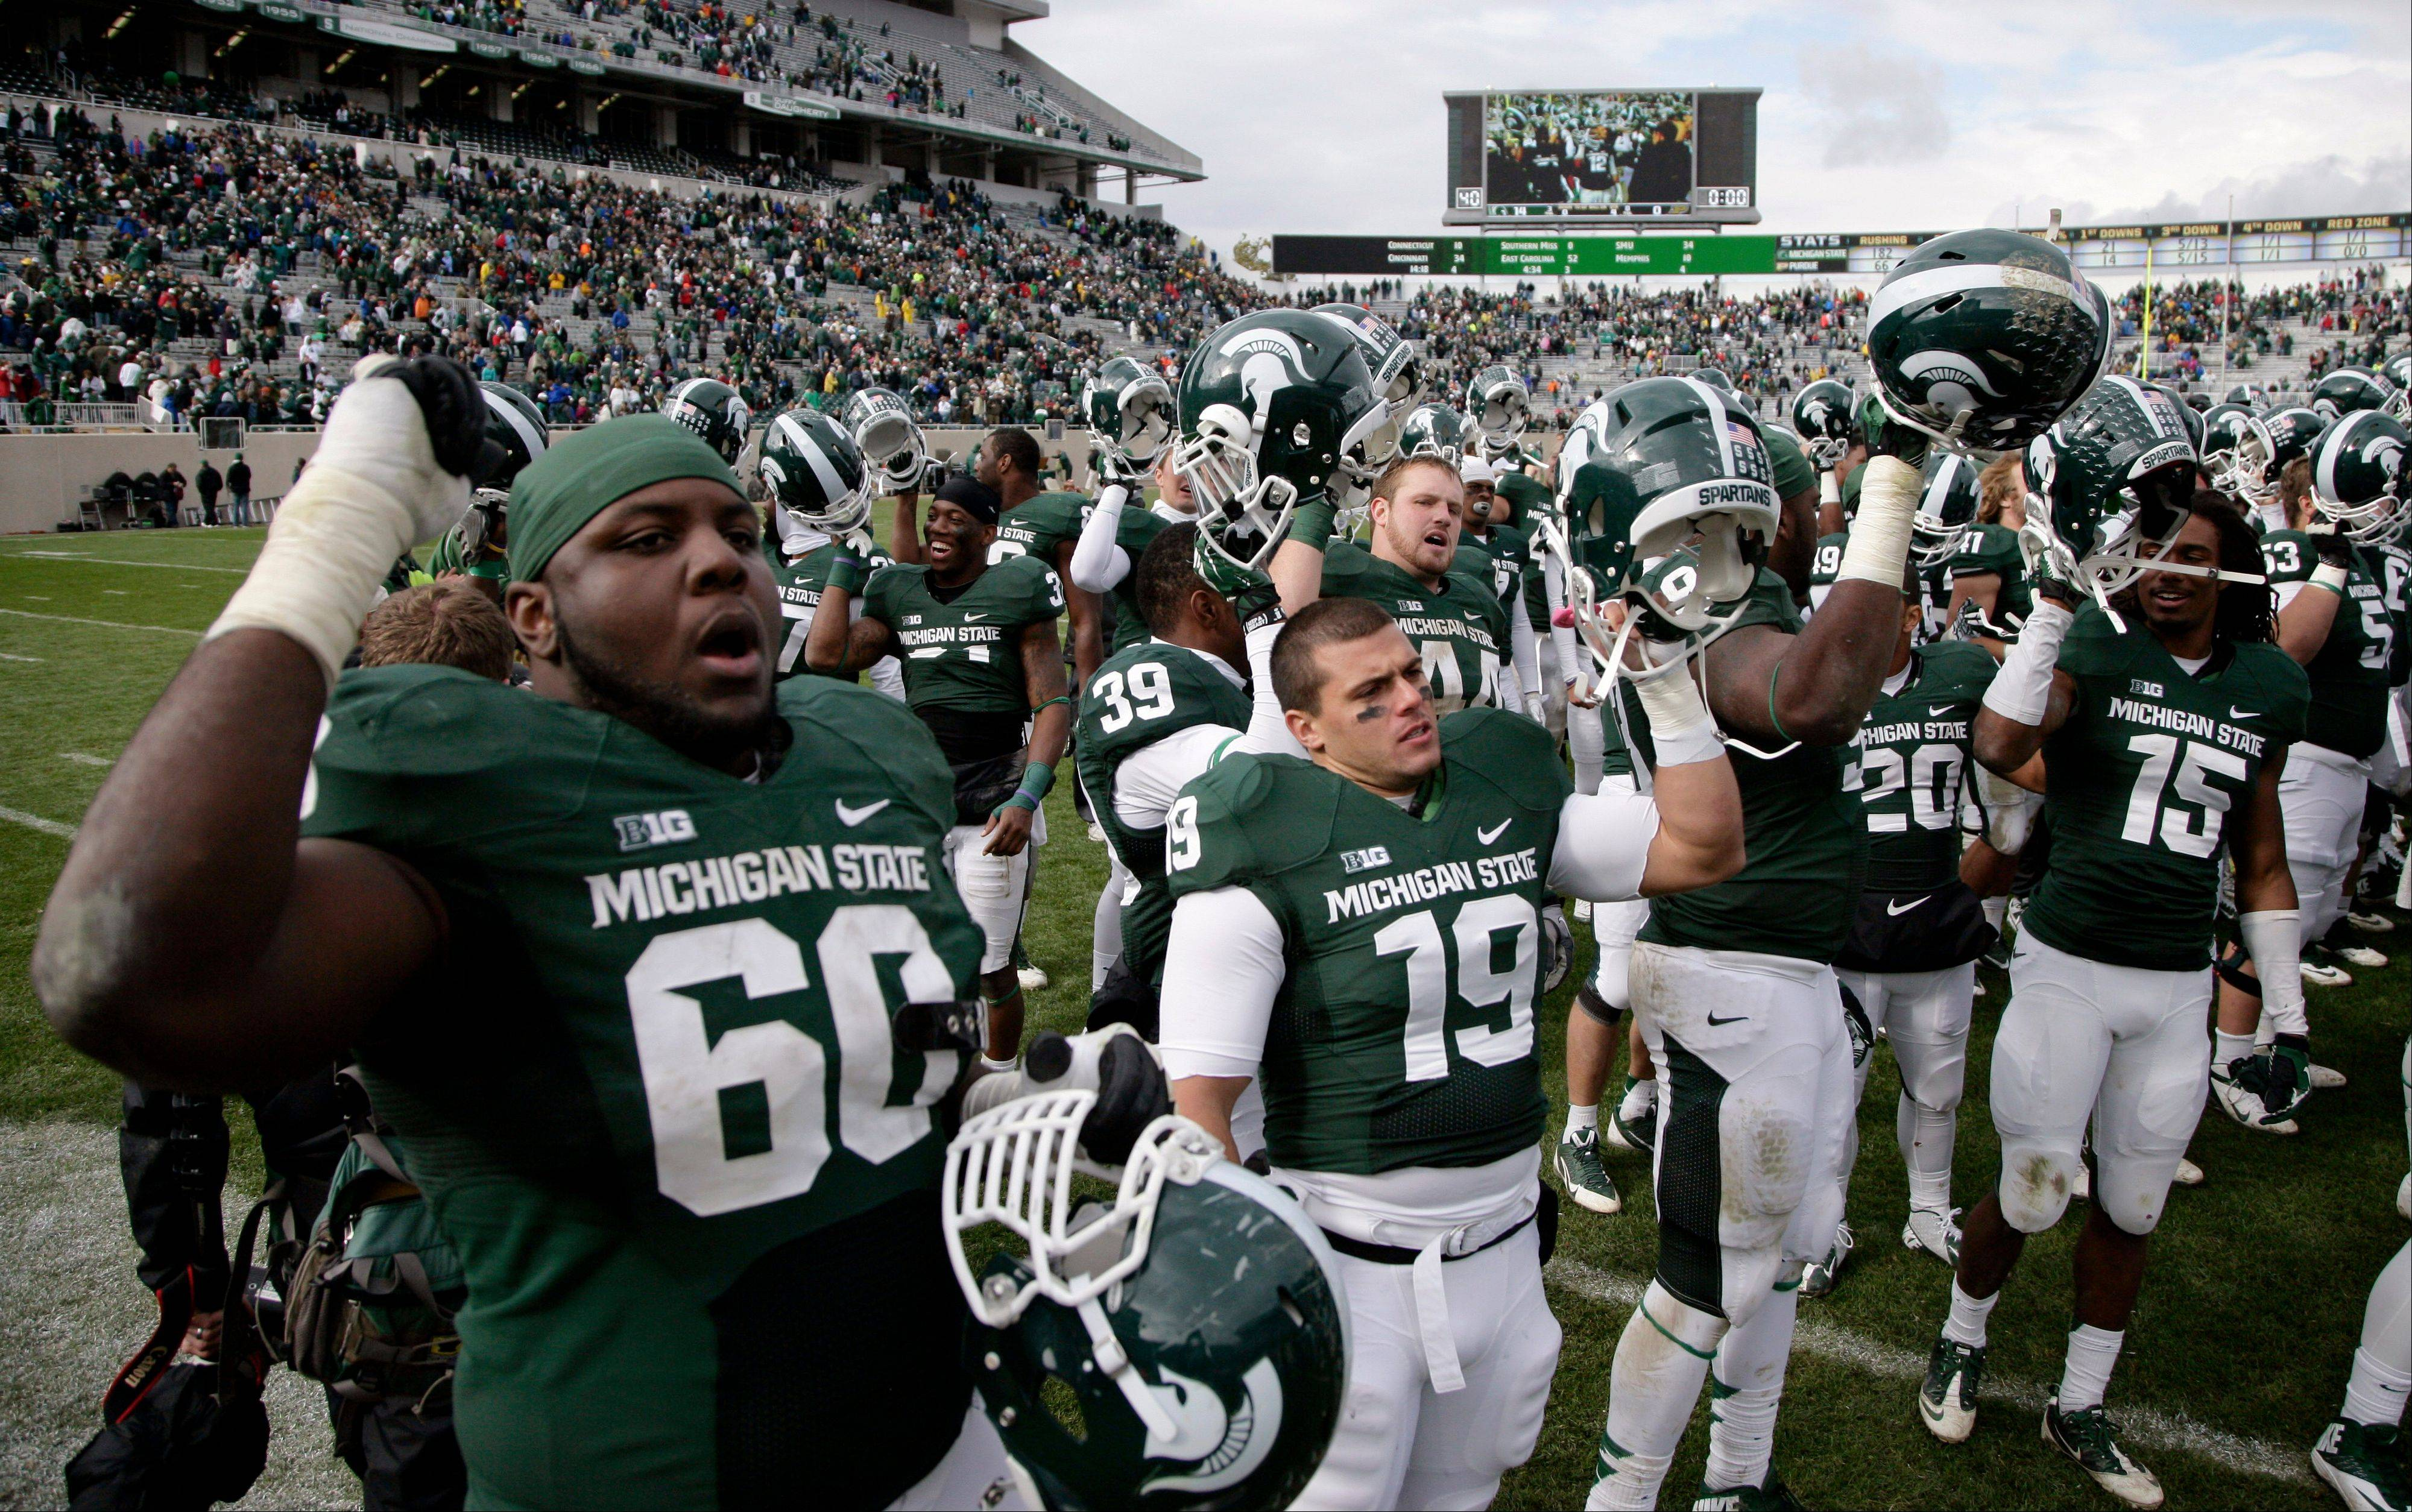 Spartans win again with little fanfare